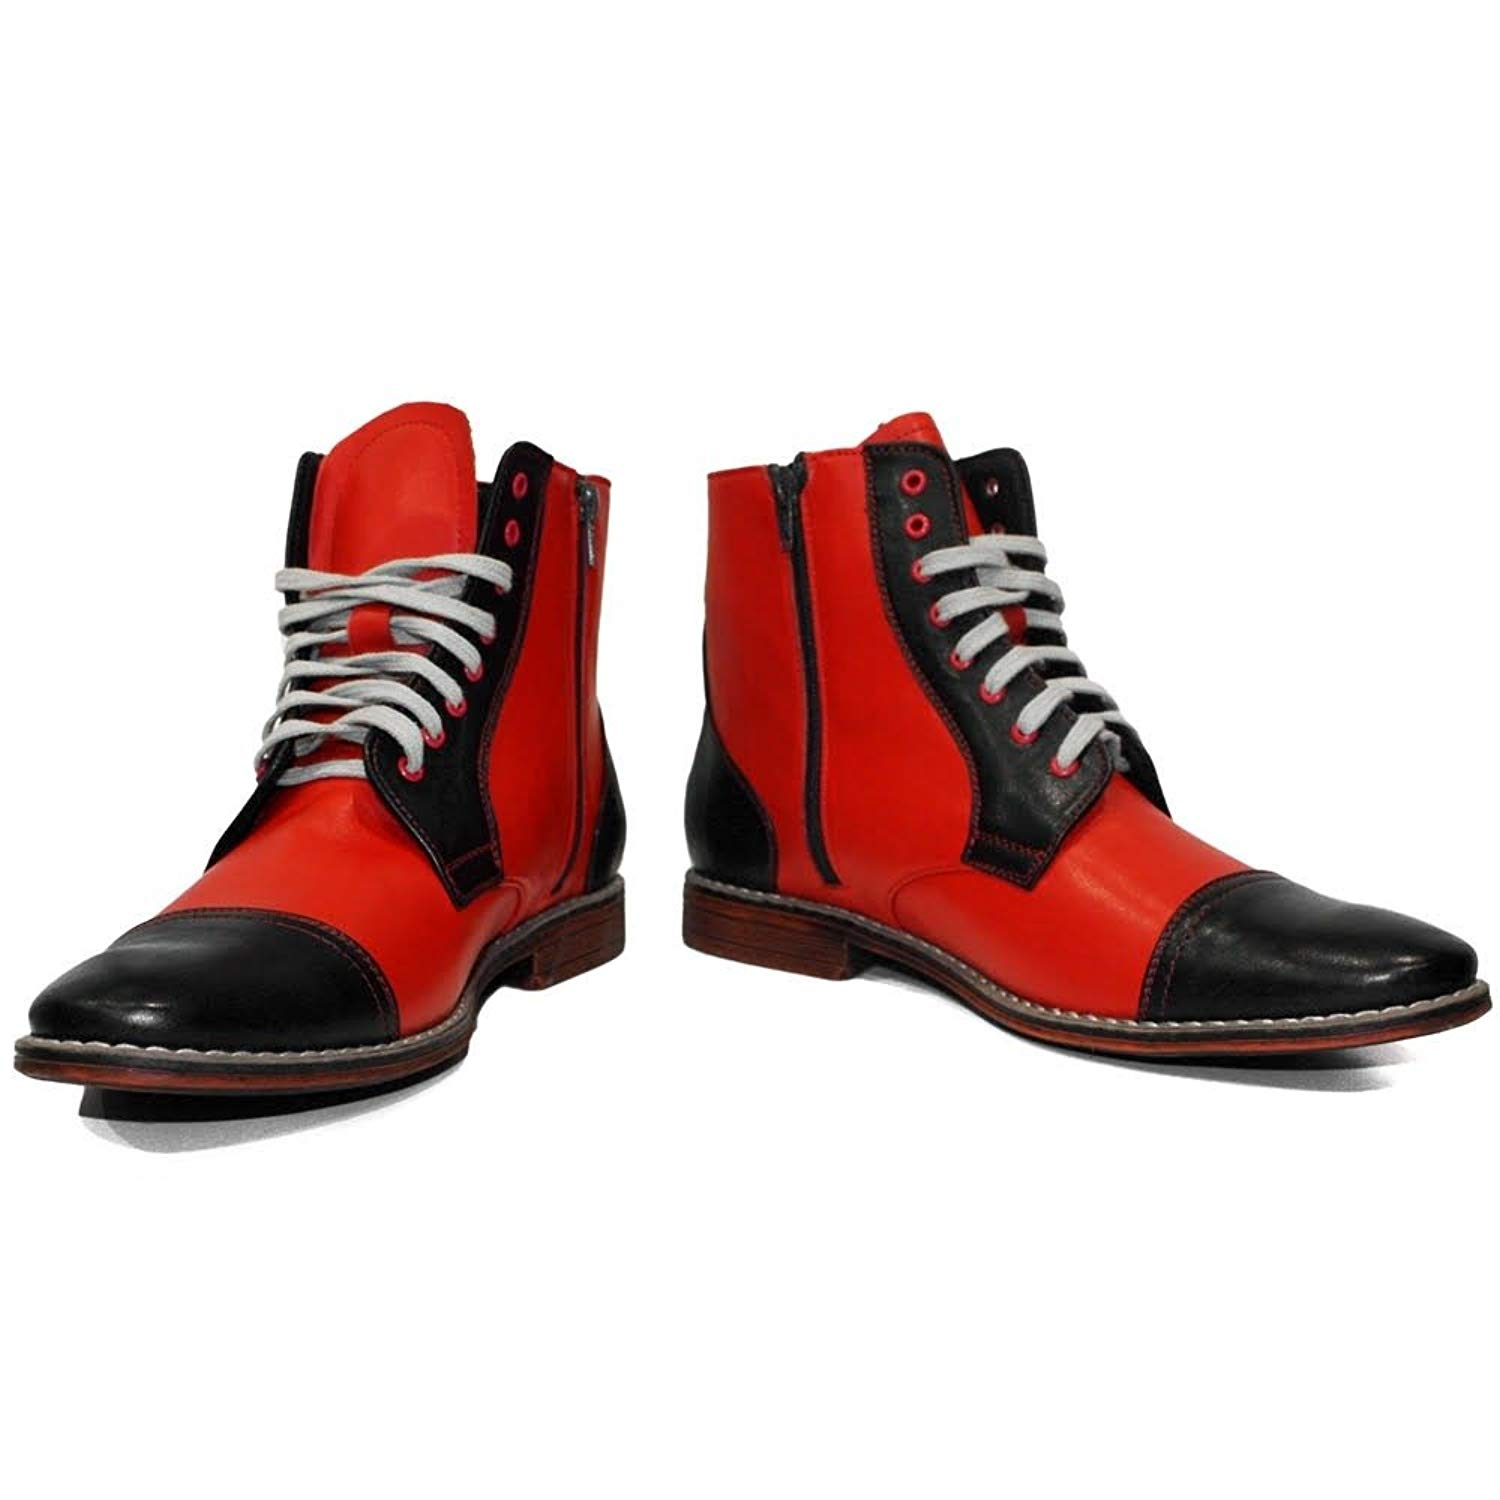 PeppeShoes Modello Beetle - Handmade Italian Mens Red Ankle Boots - Cowhide Smooth Leather - Lace-up